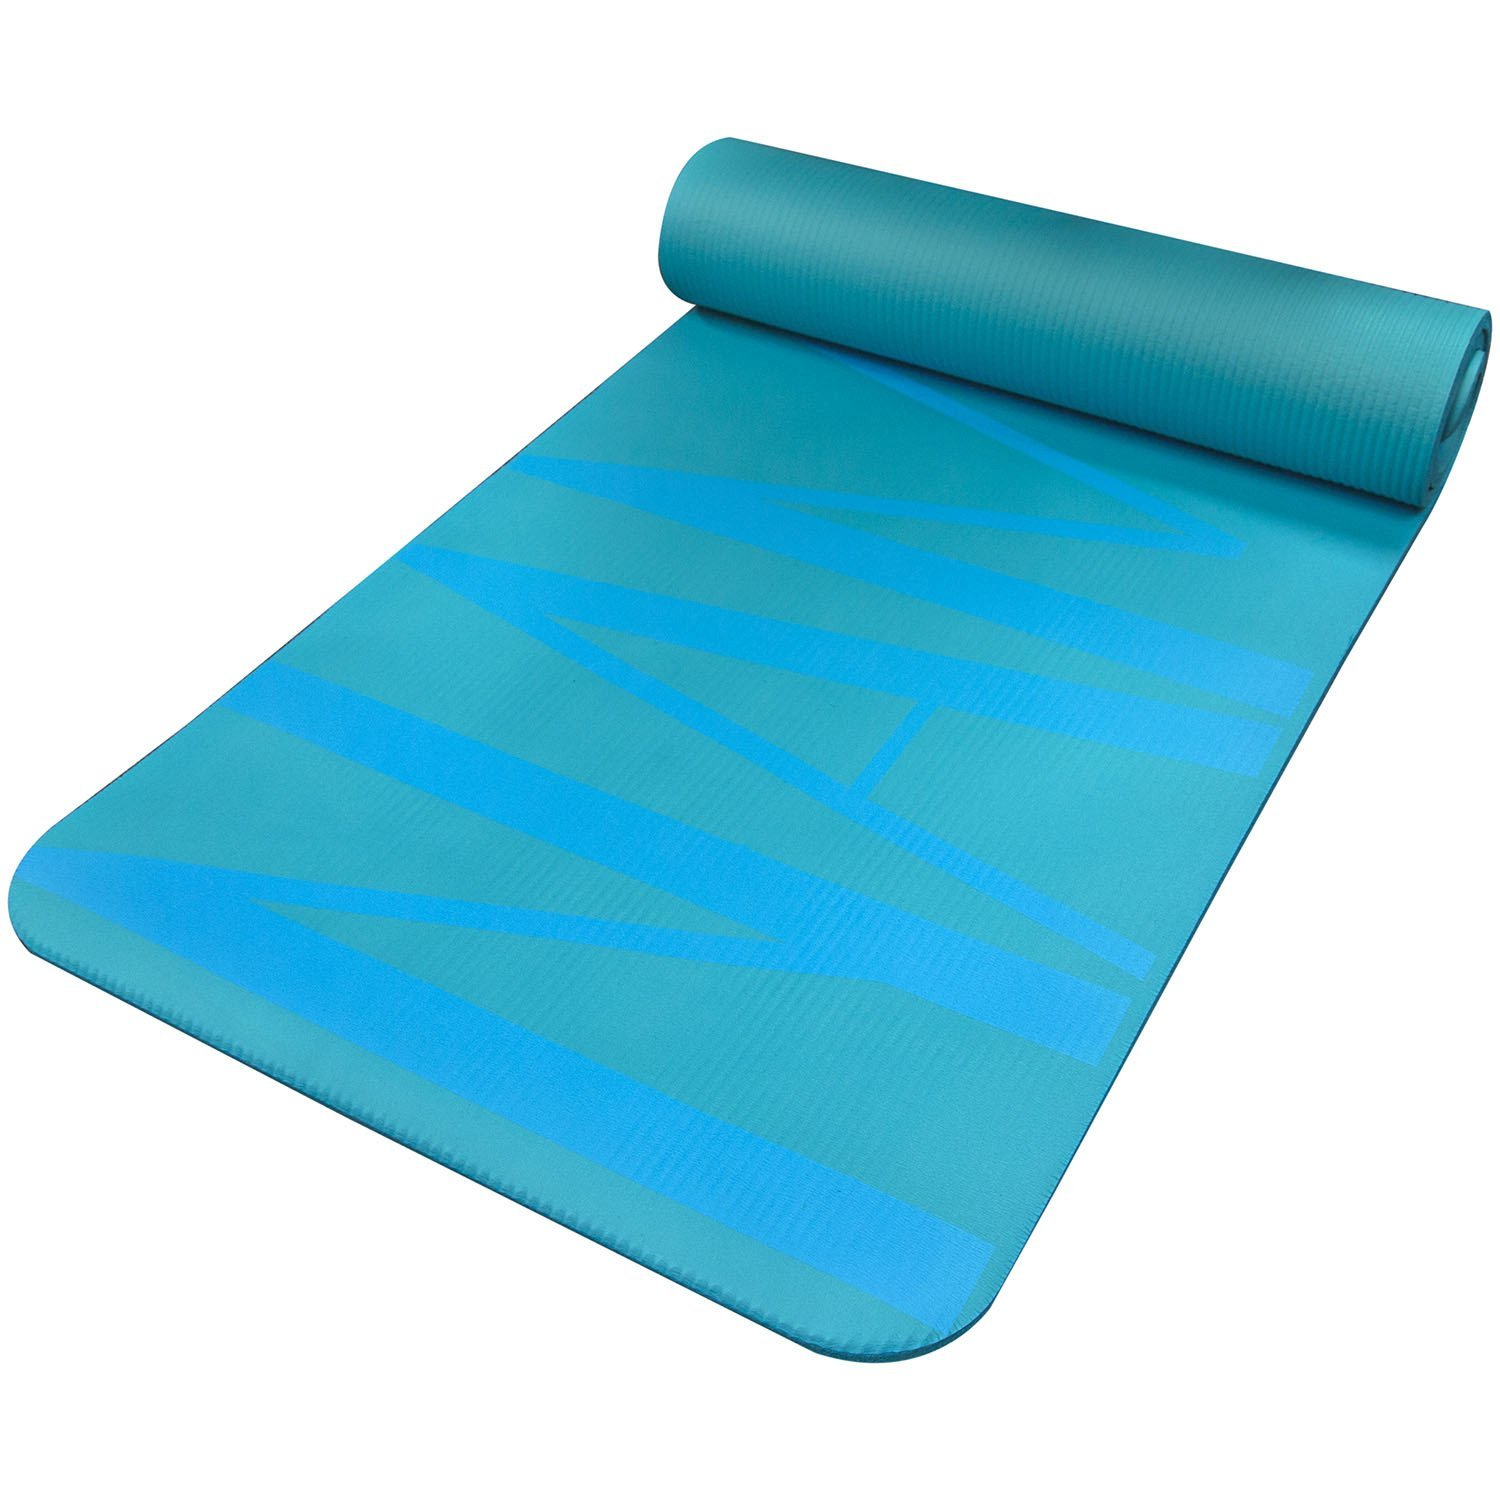 Amazon.com : Fit Spirit Extra Thick Yoga Mat Namaste Blue ½ Inch ...